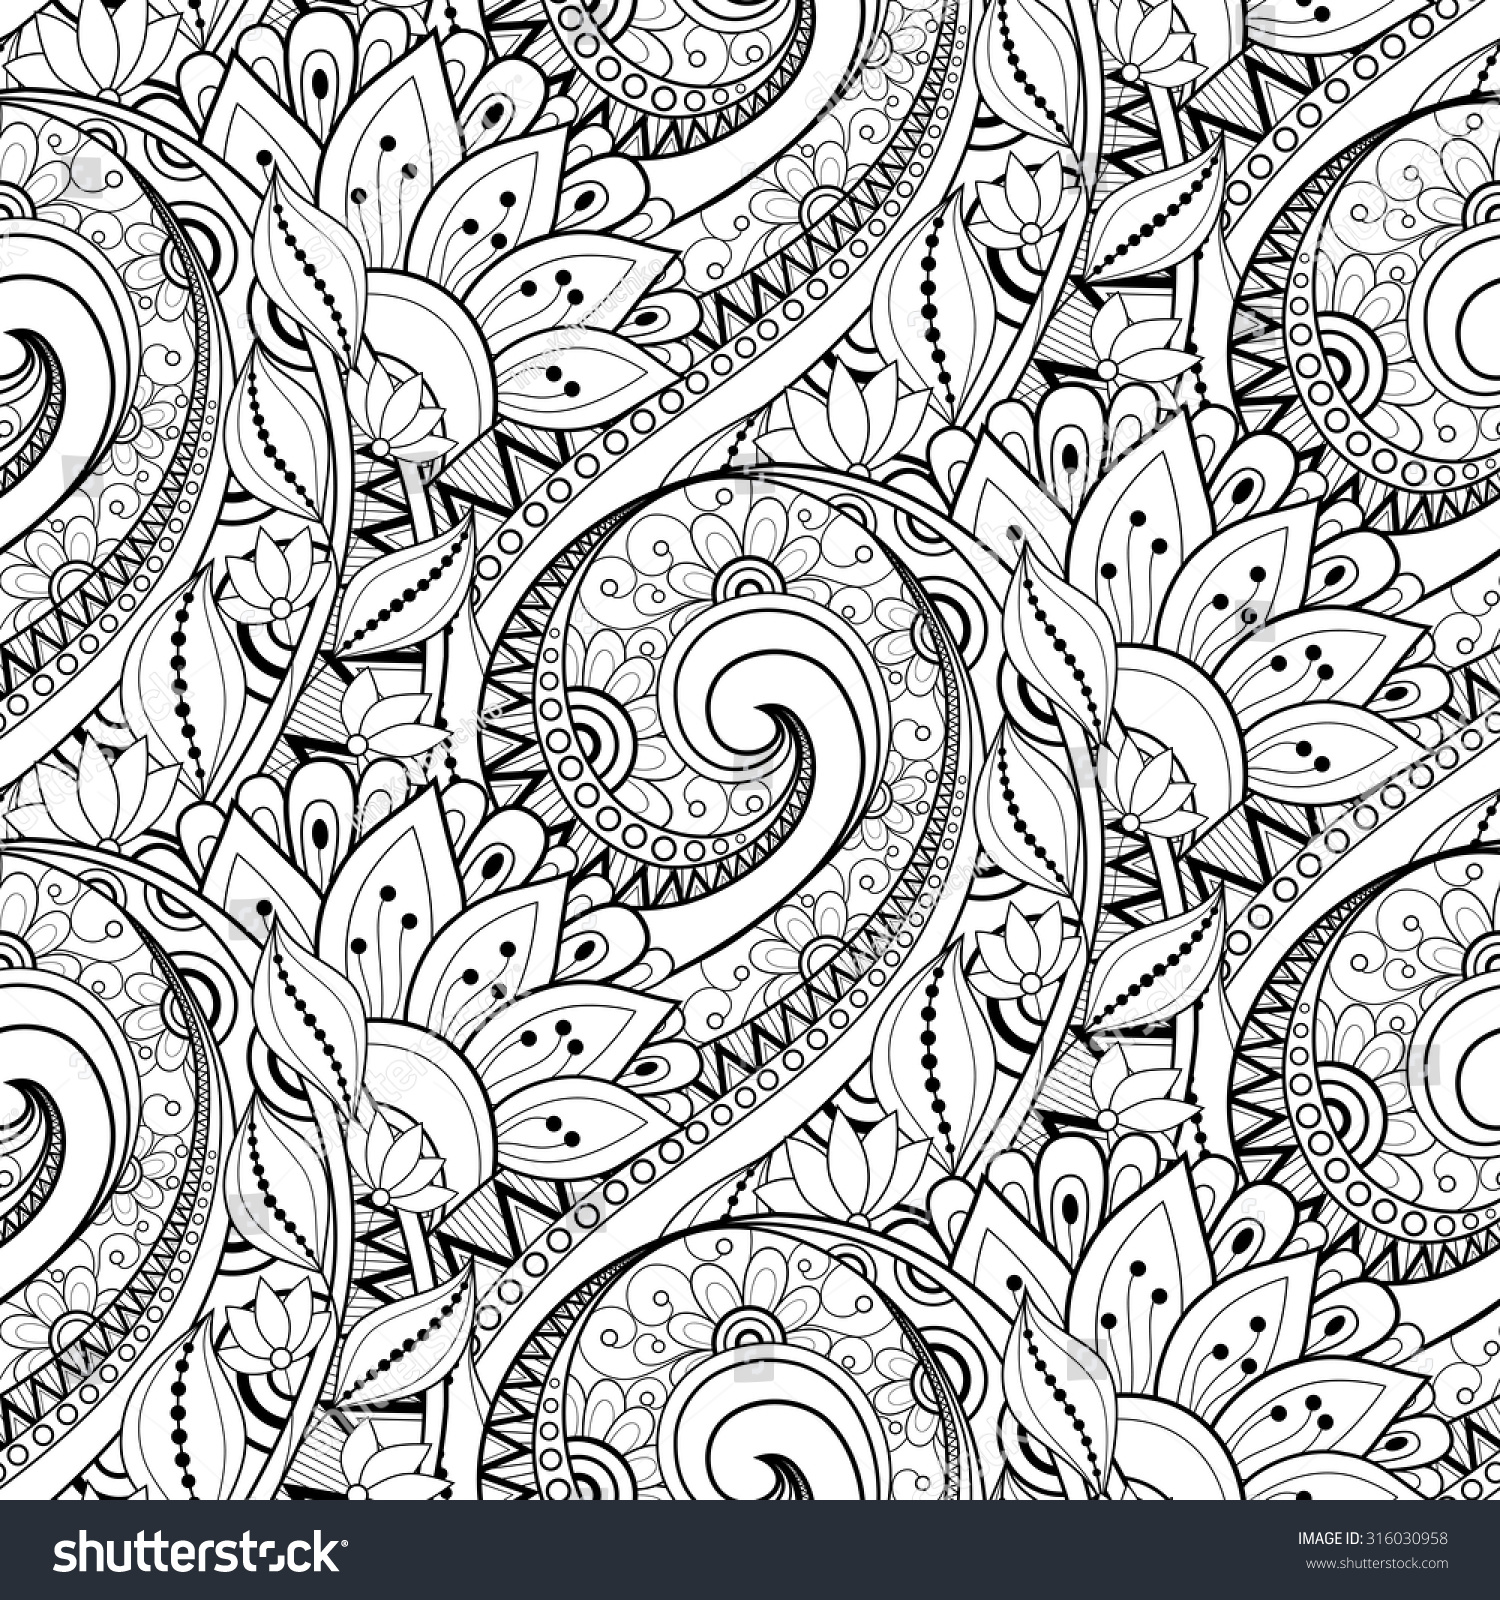 Vector Seamless Monochrome Floral Pattern Hand Drawn Floral Texture Decorative Flowers Coloring Book